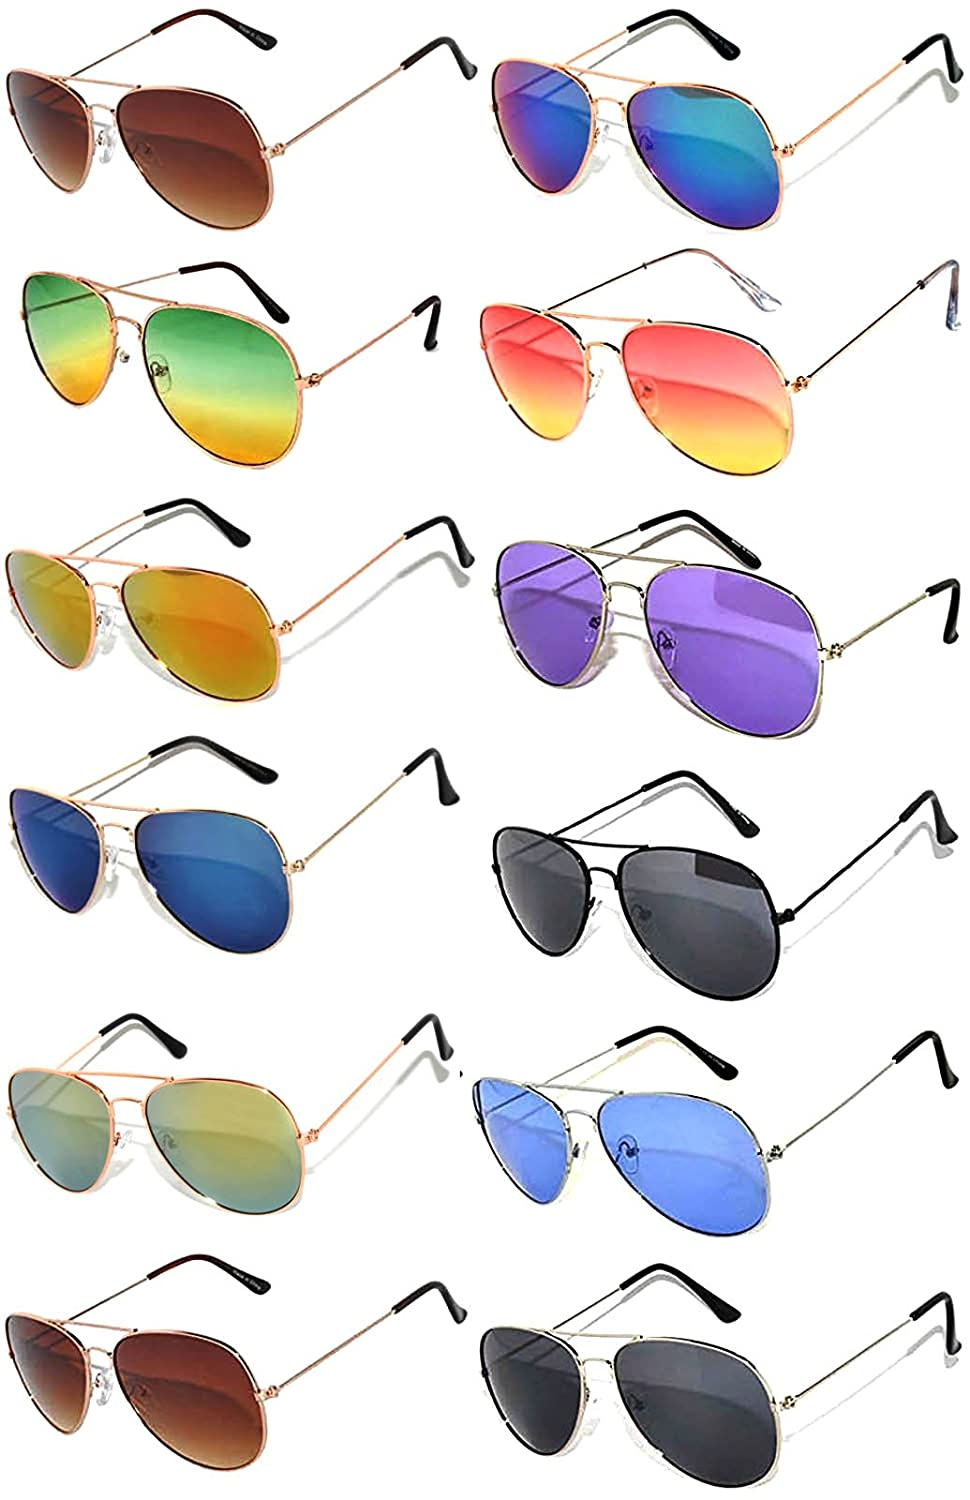 9a46f852bf241 Top1  12 Pairs Classic Aviator Sunglasses Metal Gold Silver Black Colored  Mirror Lens OWL